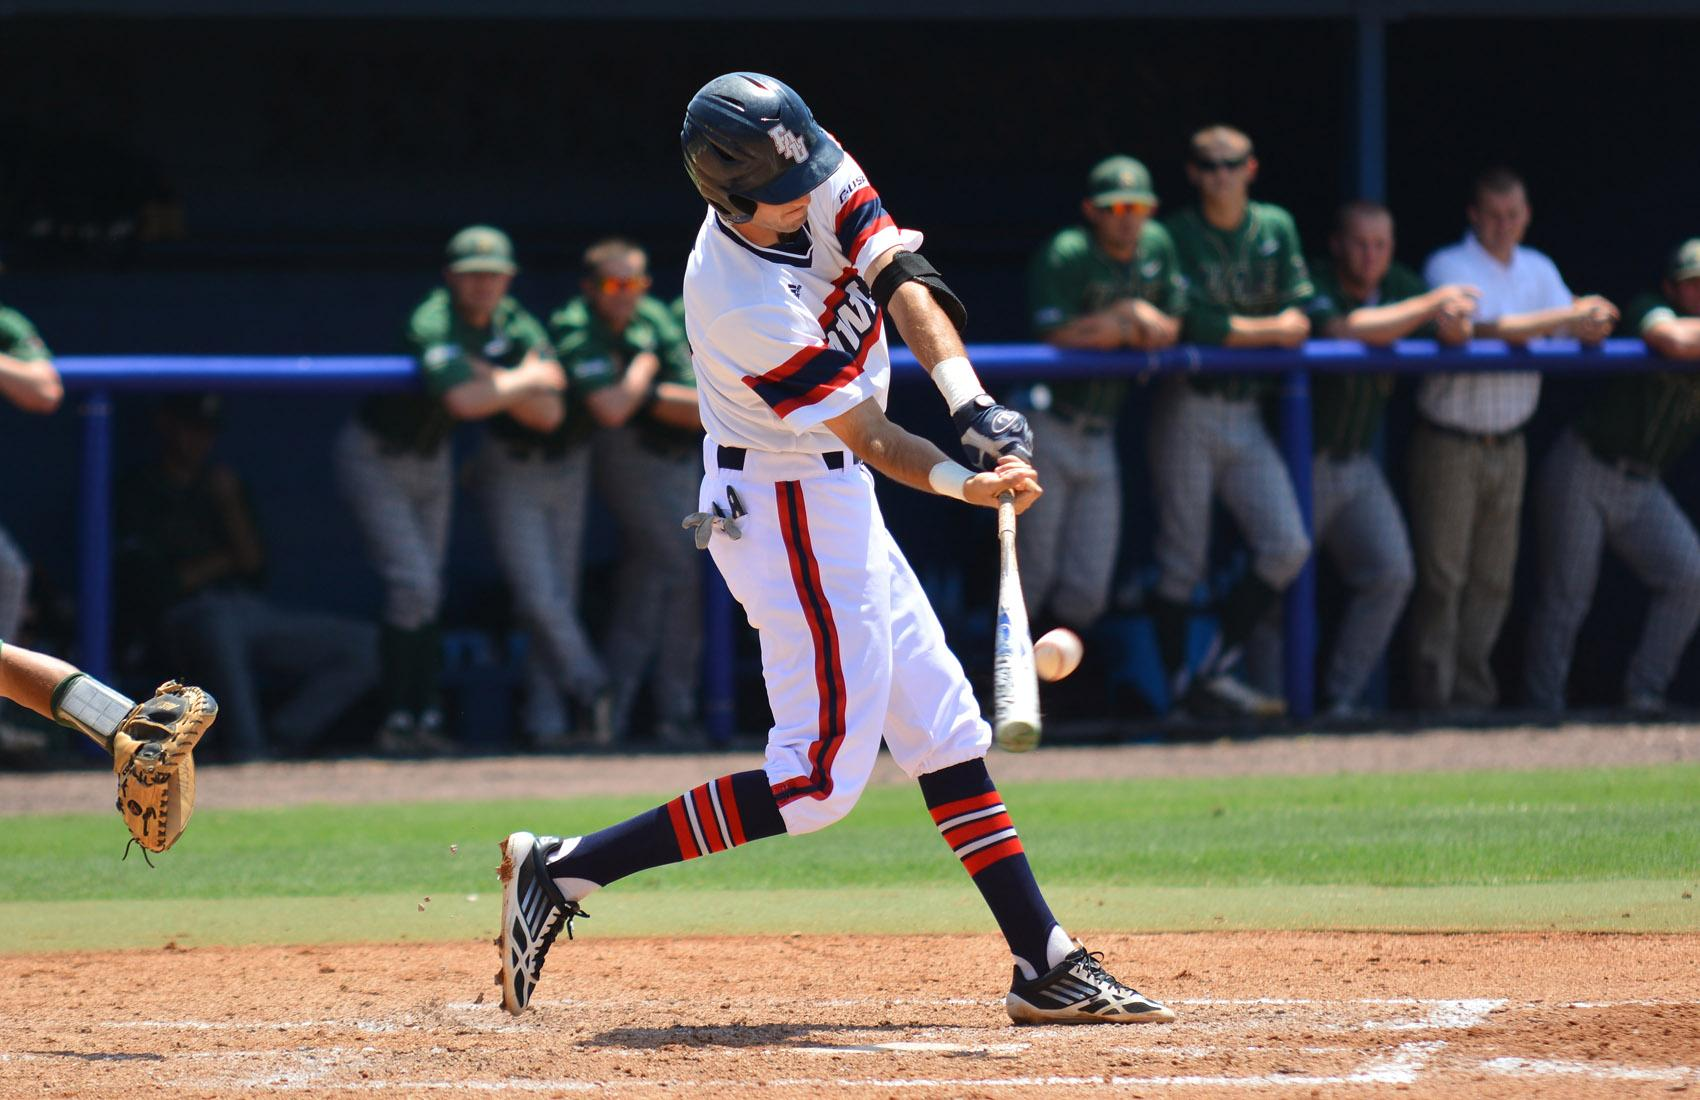 In the last game of the season last year, FAU lost to UAB 8-6 on May 17th.  They were 14-16 in Conference USA play last season. Michelle Friswell   Associate Editor